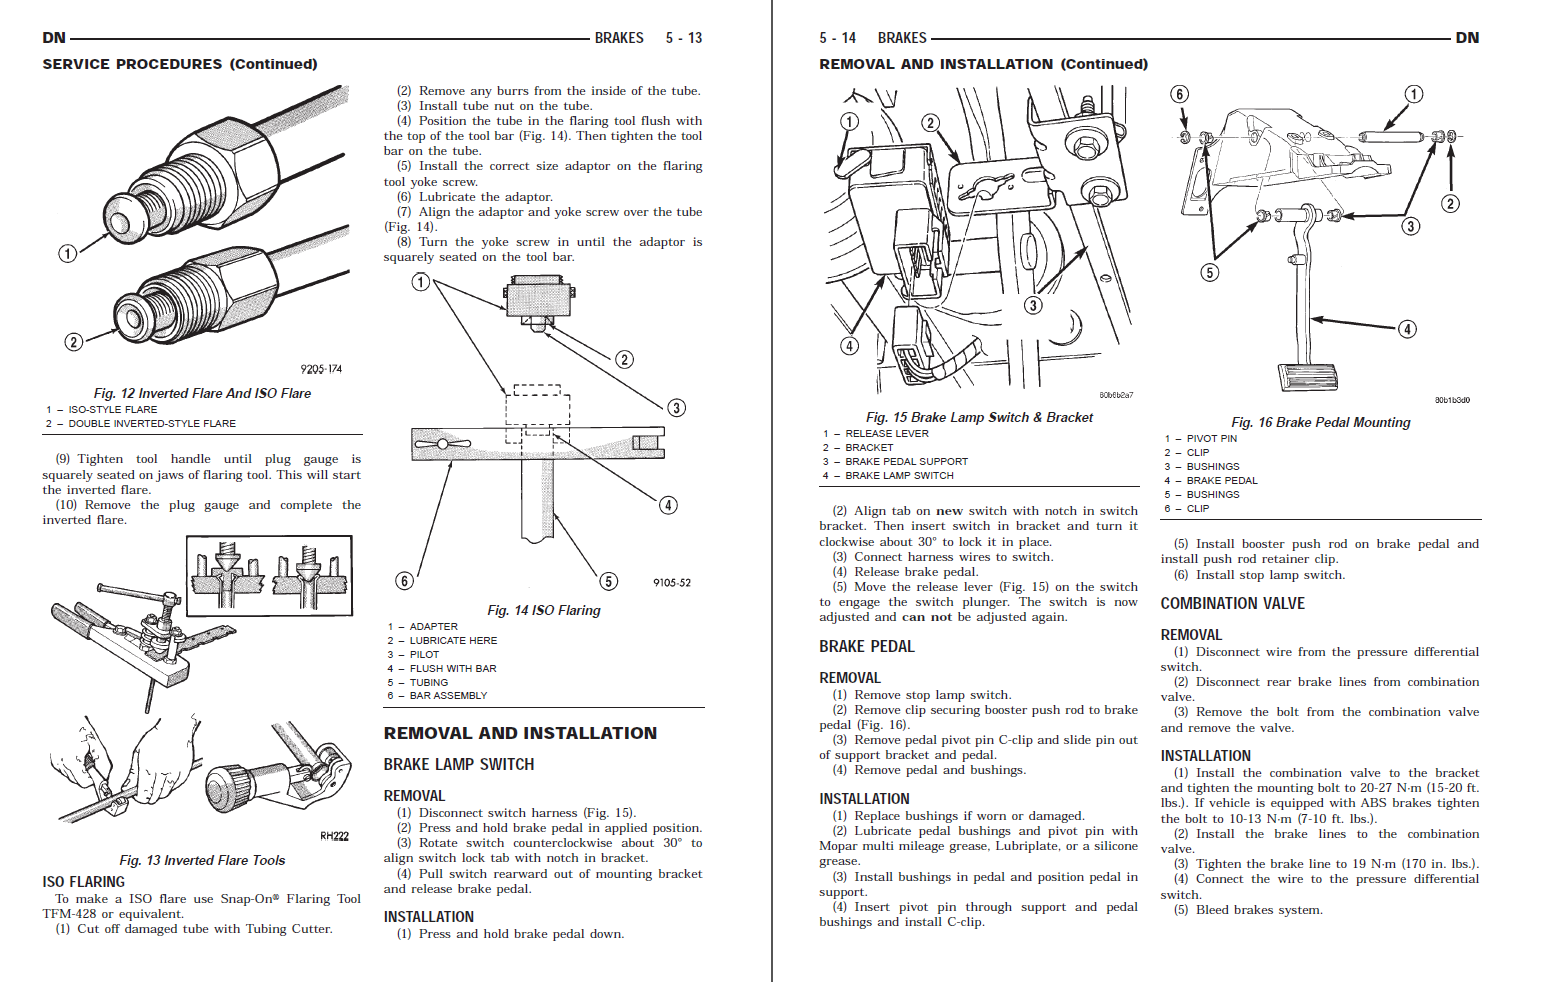 2002 Dodge Durango 4.2L 5.9L Factory Repair Service Manual